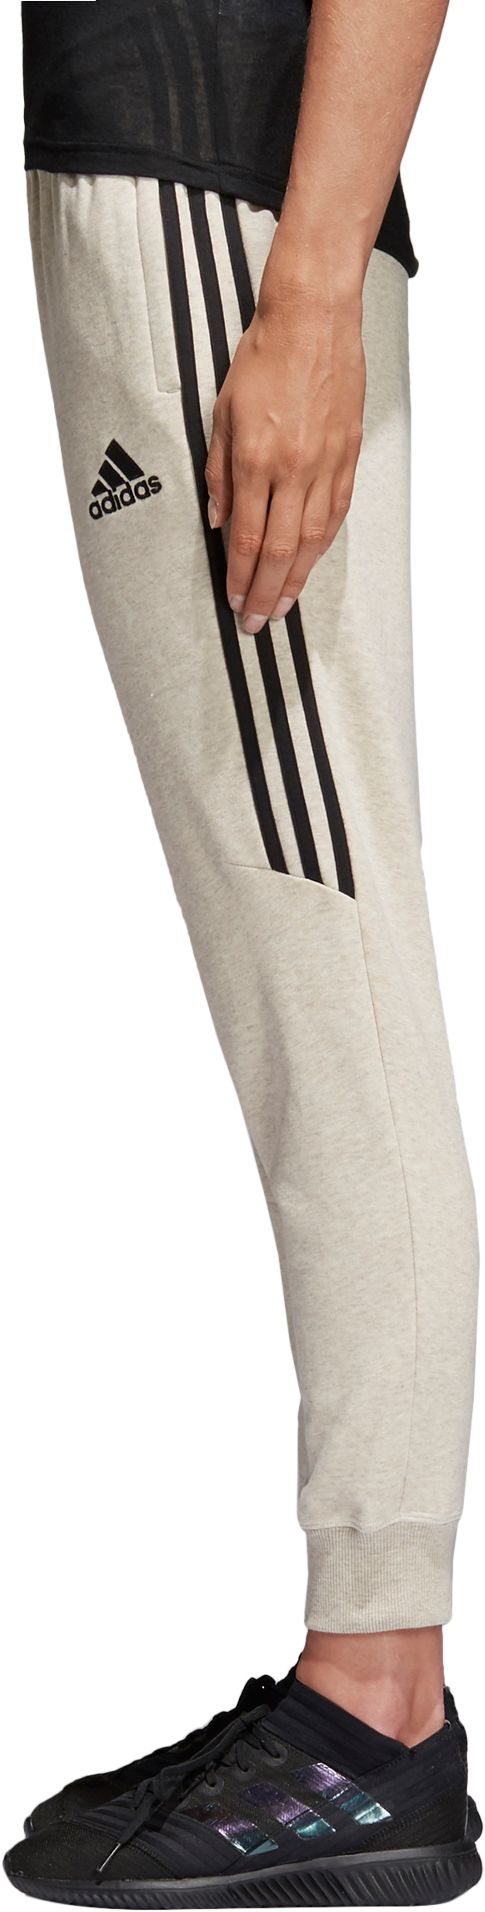 Adidas Women's French Terry Tiro 17 Pants by Adidas